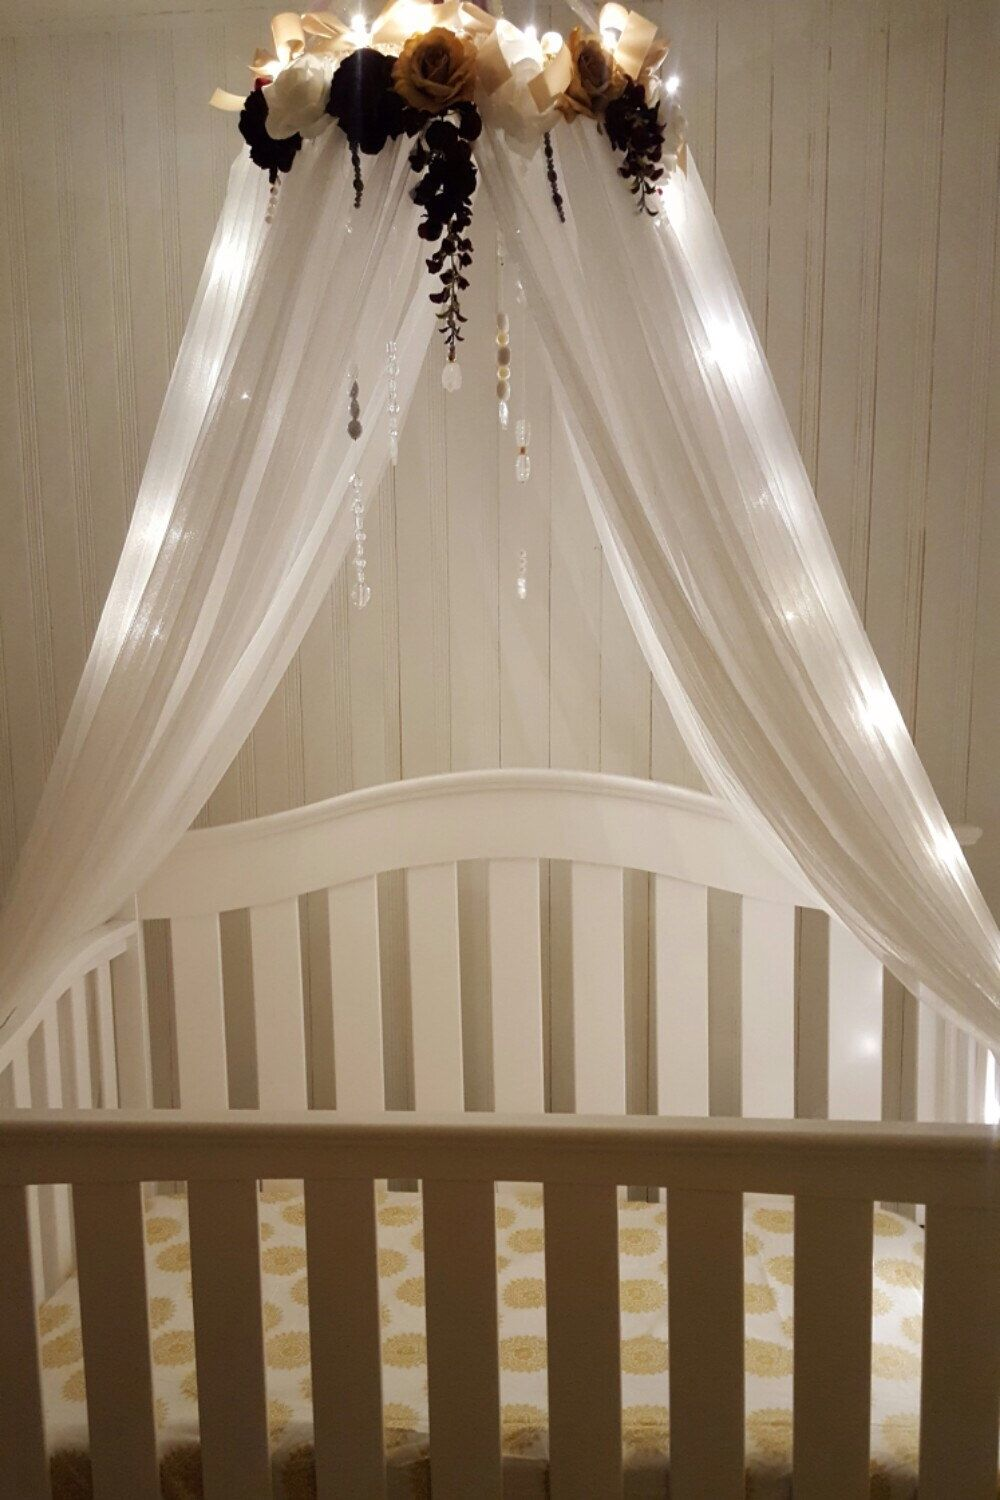 Gold crib for sale - Sale Canopy Nursery Crib Canopy Baby Canopy Crib Canopy Bed Canopy